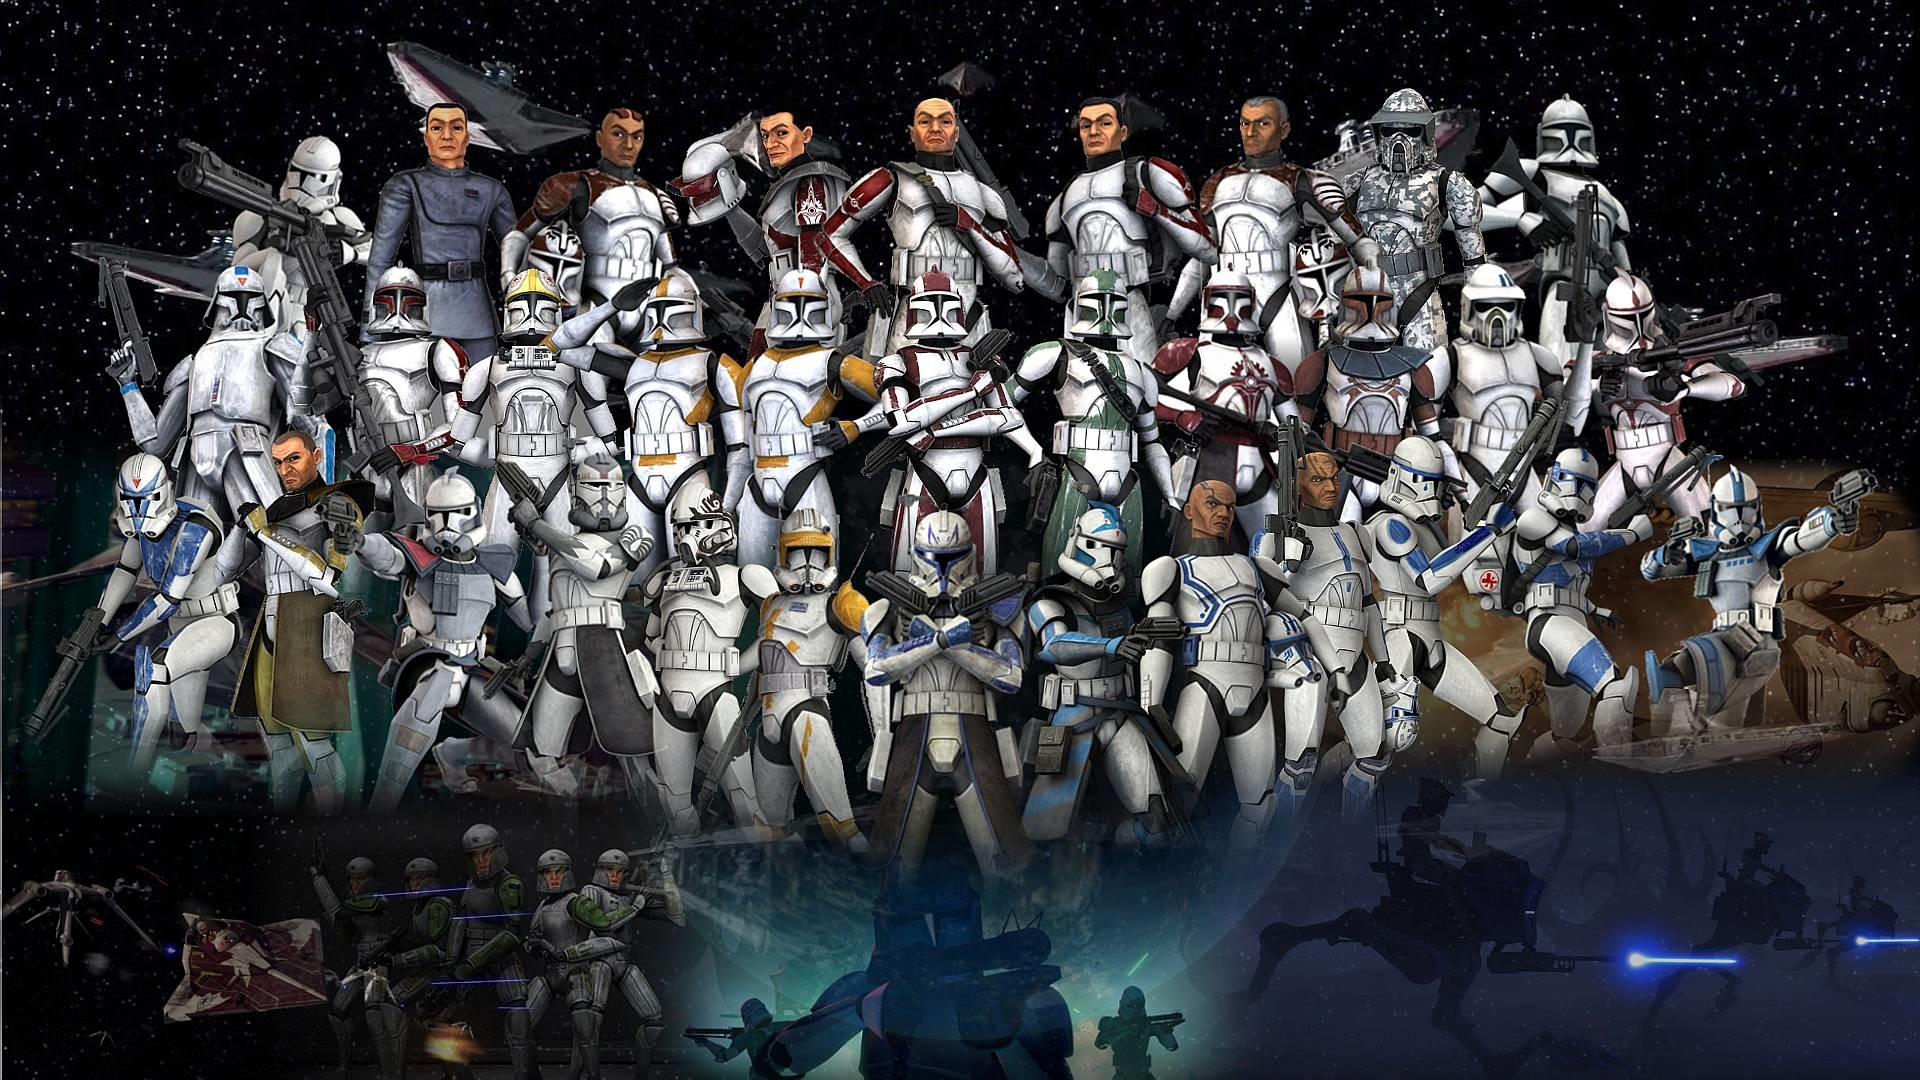 1920x1080 Clone Trooper wallpaper - 1172308